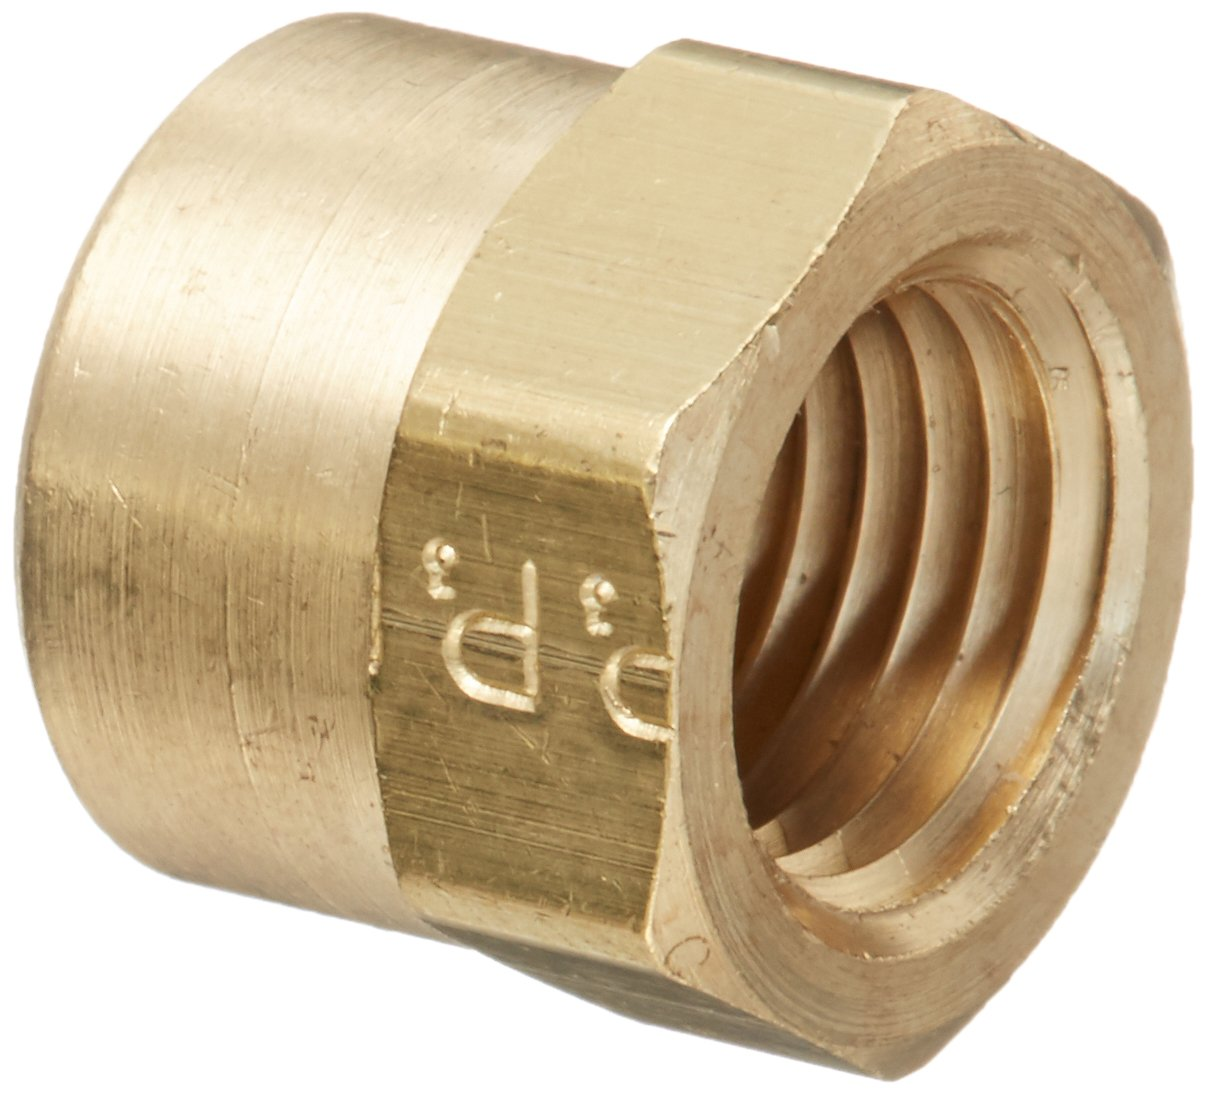 Parker Hannifin 213P-4-pk5 Pipe Fitting Cap, Brass, 1/4'' Female Thread (Pack of 5) by Parker Hannifin